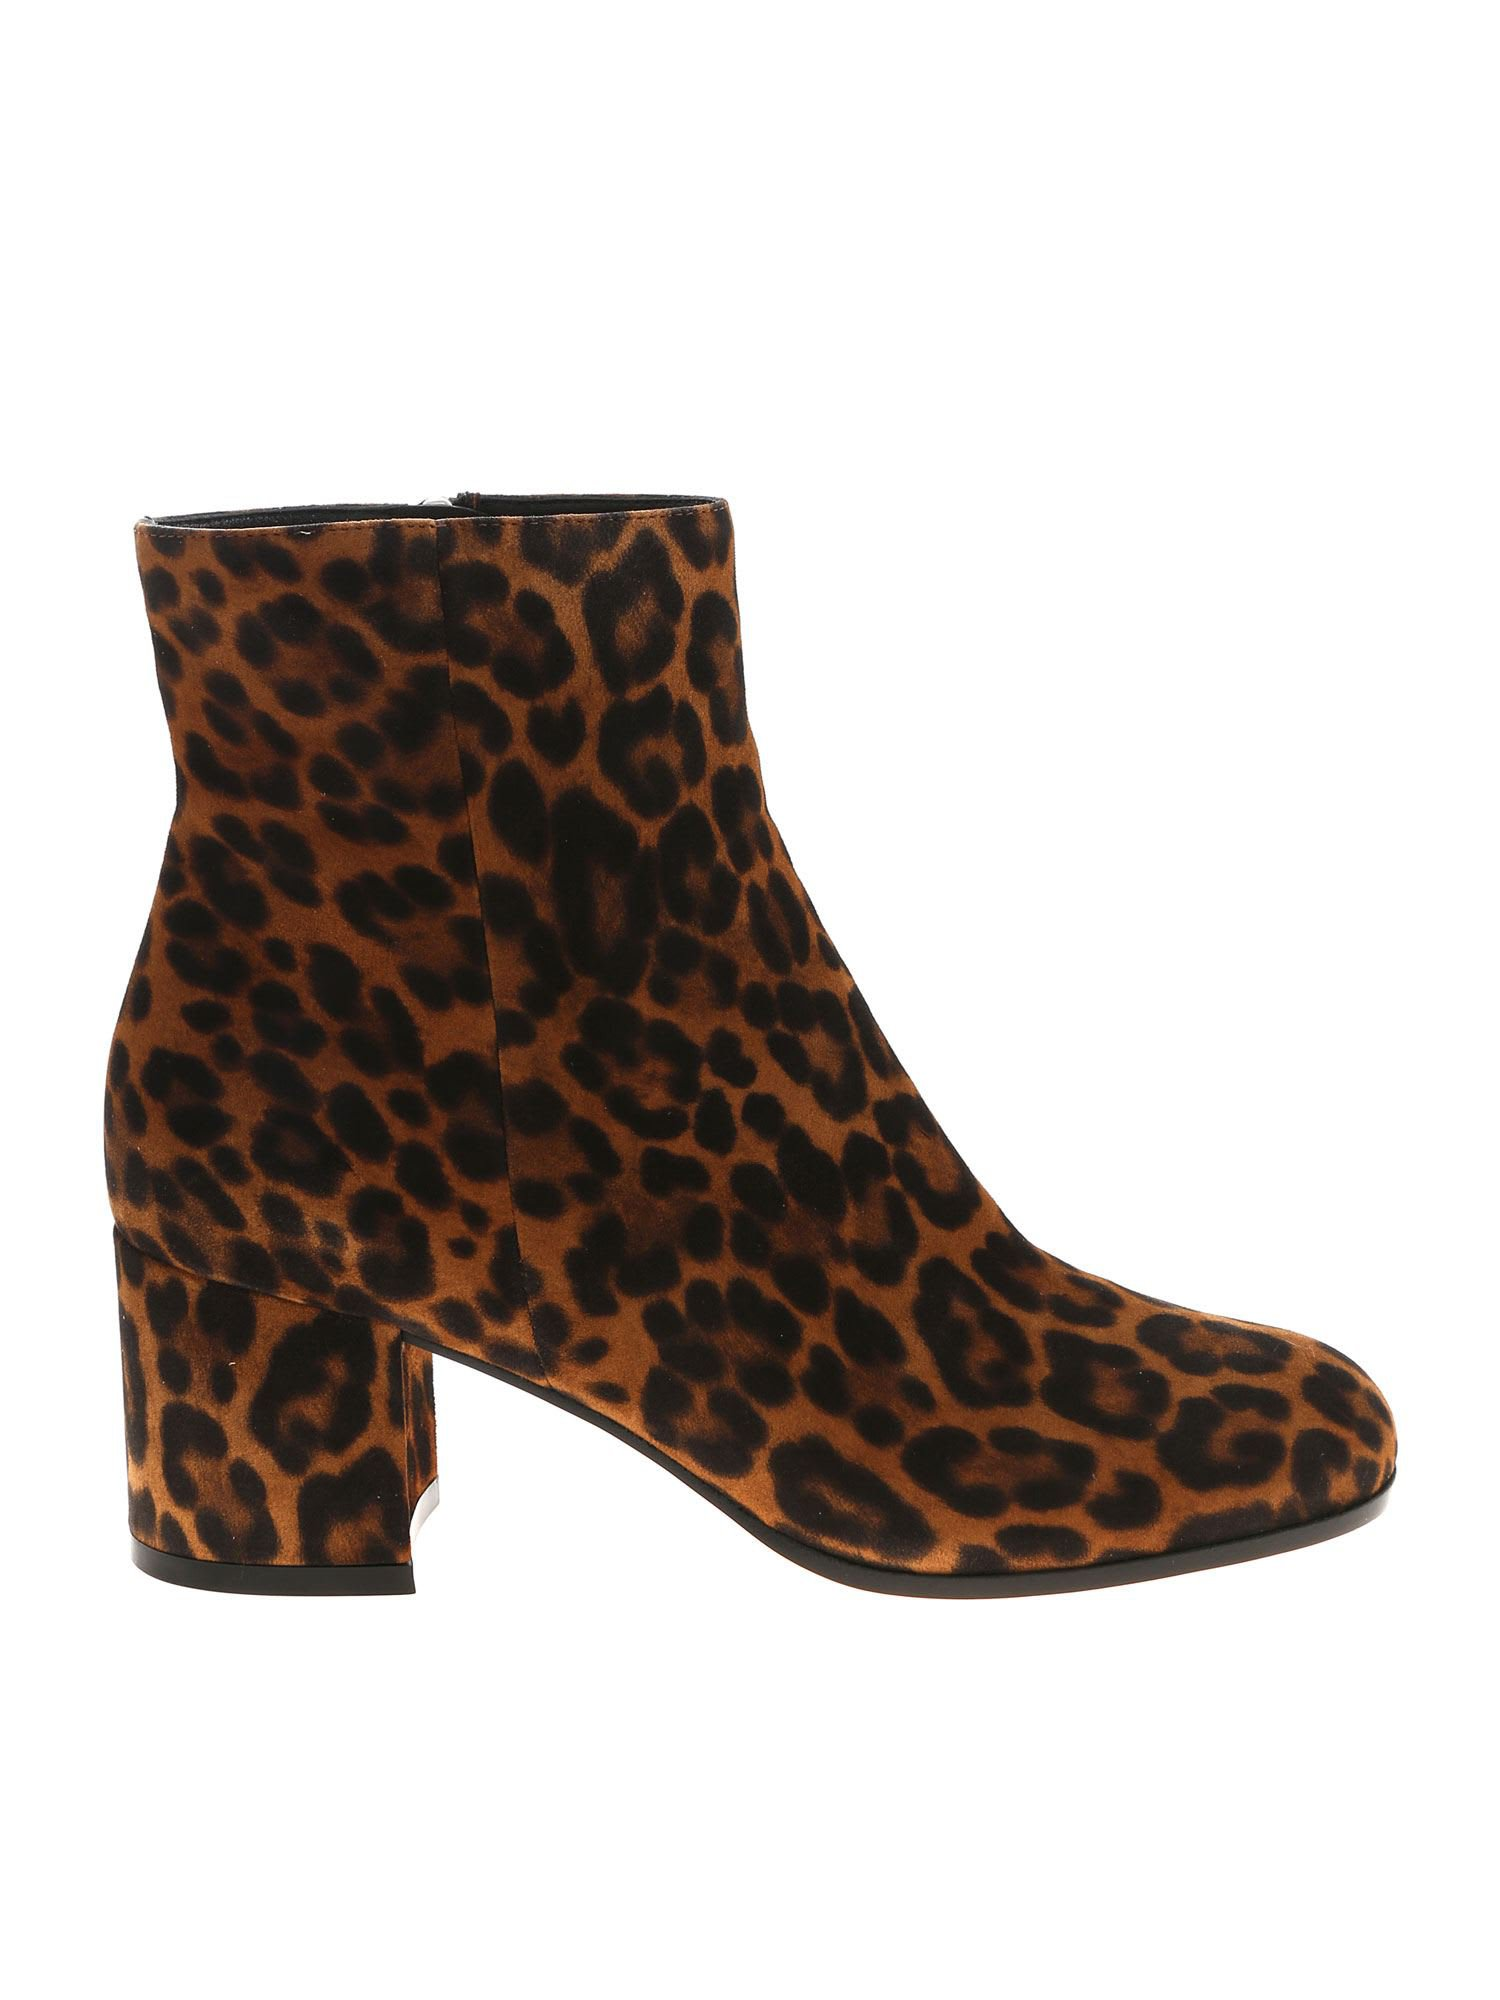 Gianvito Rossi Margaux Mid Boots